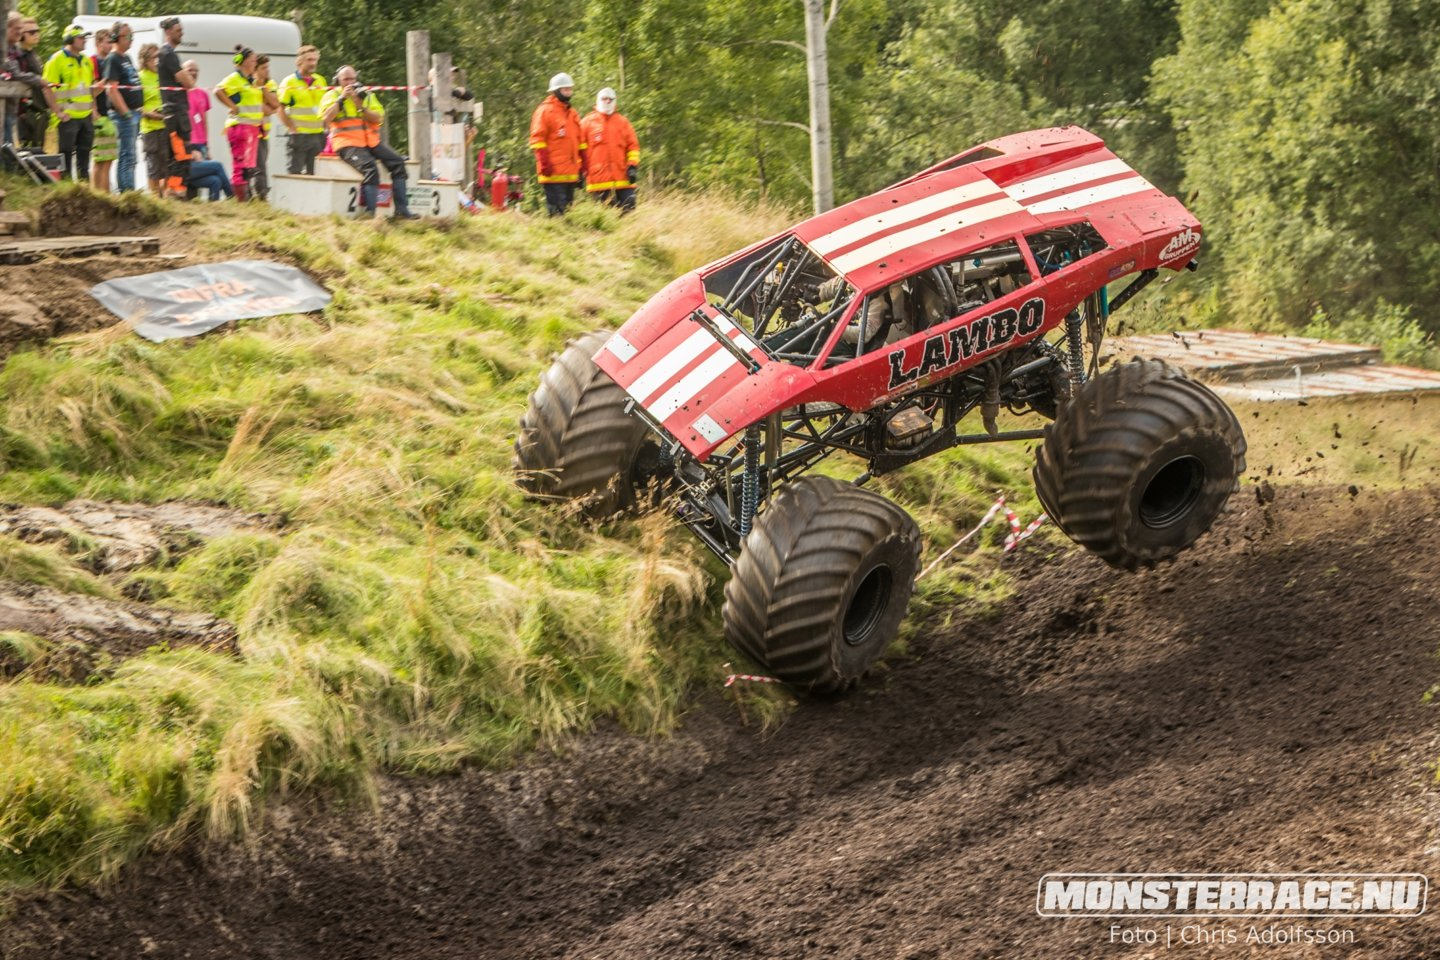 Monsterrace Ed dag 1 (132)